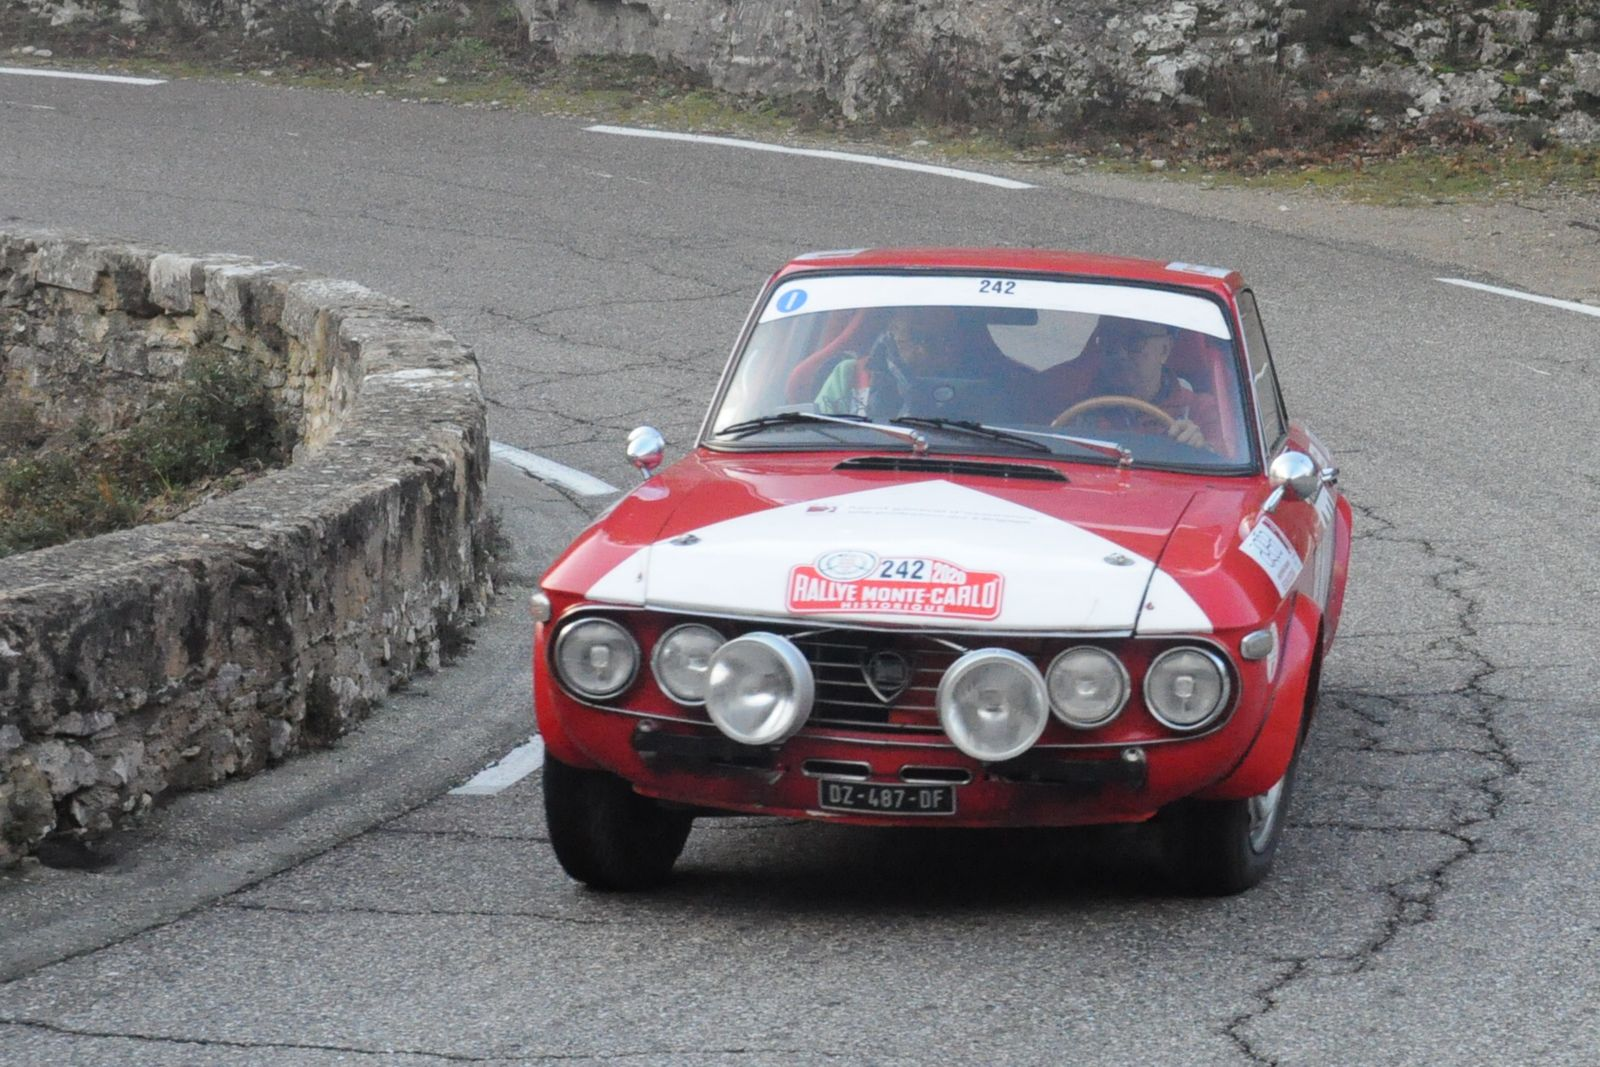 Lancia Fulvia 1,3 S Coupé 1970 ..... Photo : R.S.